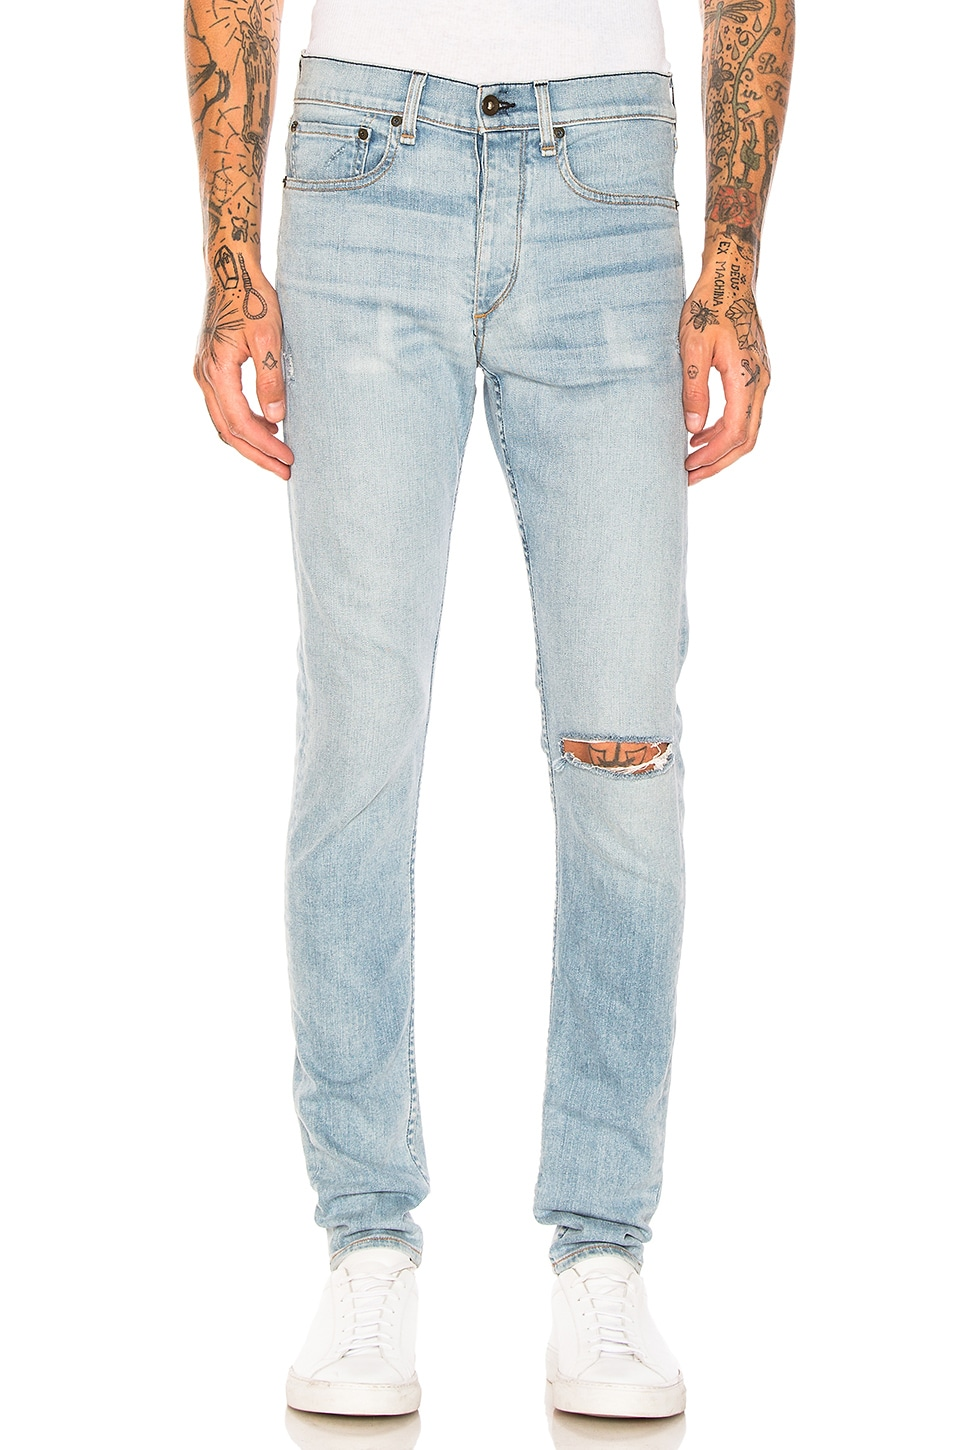 Standard Issue Fit 1 Jeans by Rag & Bone